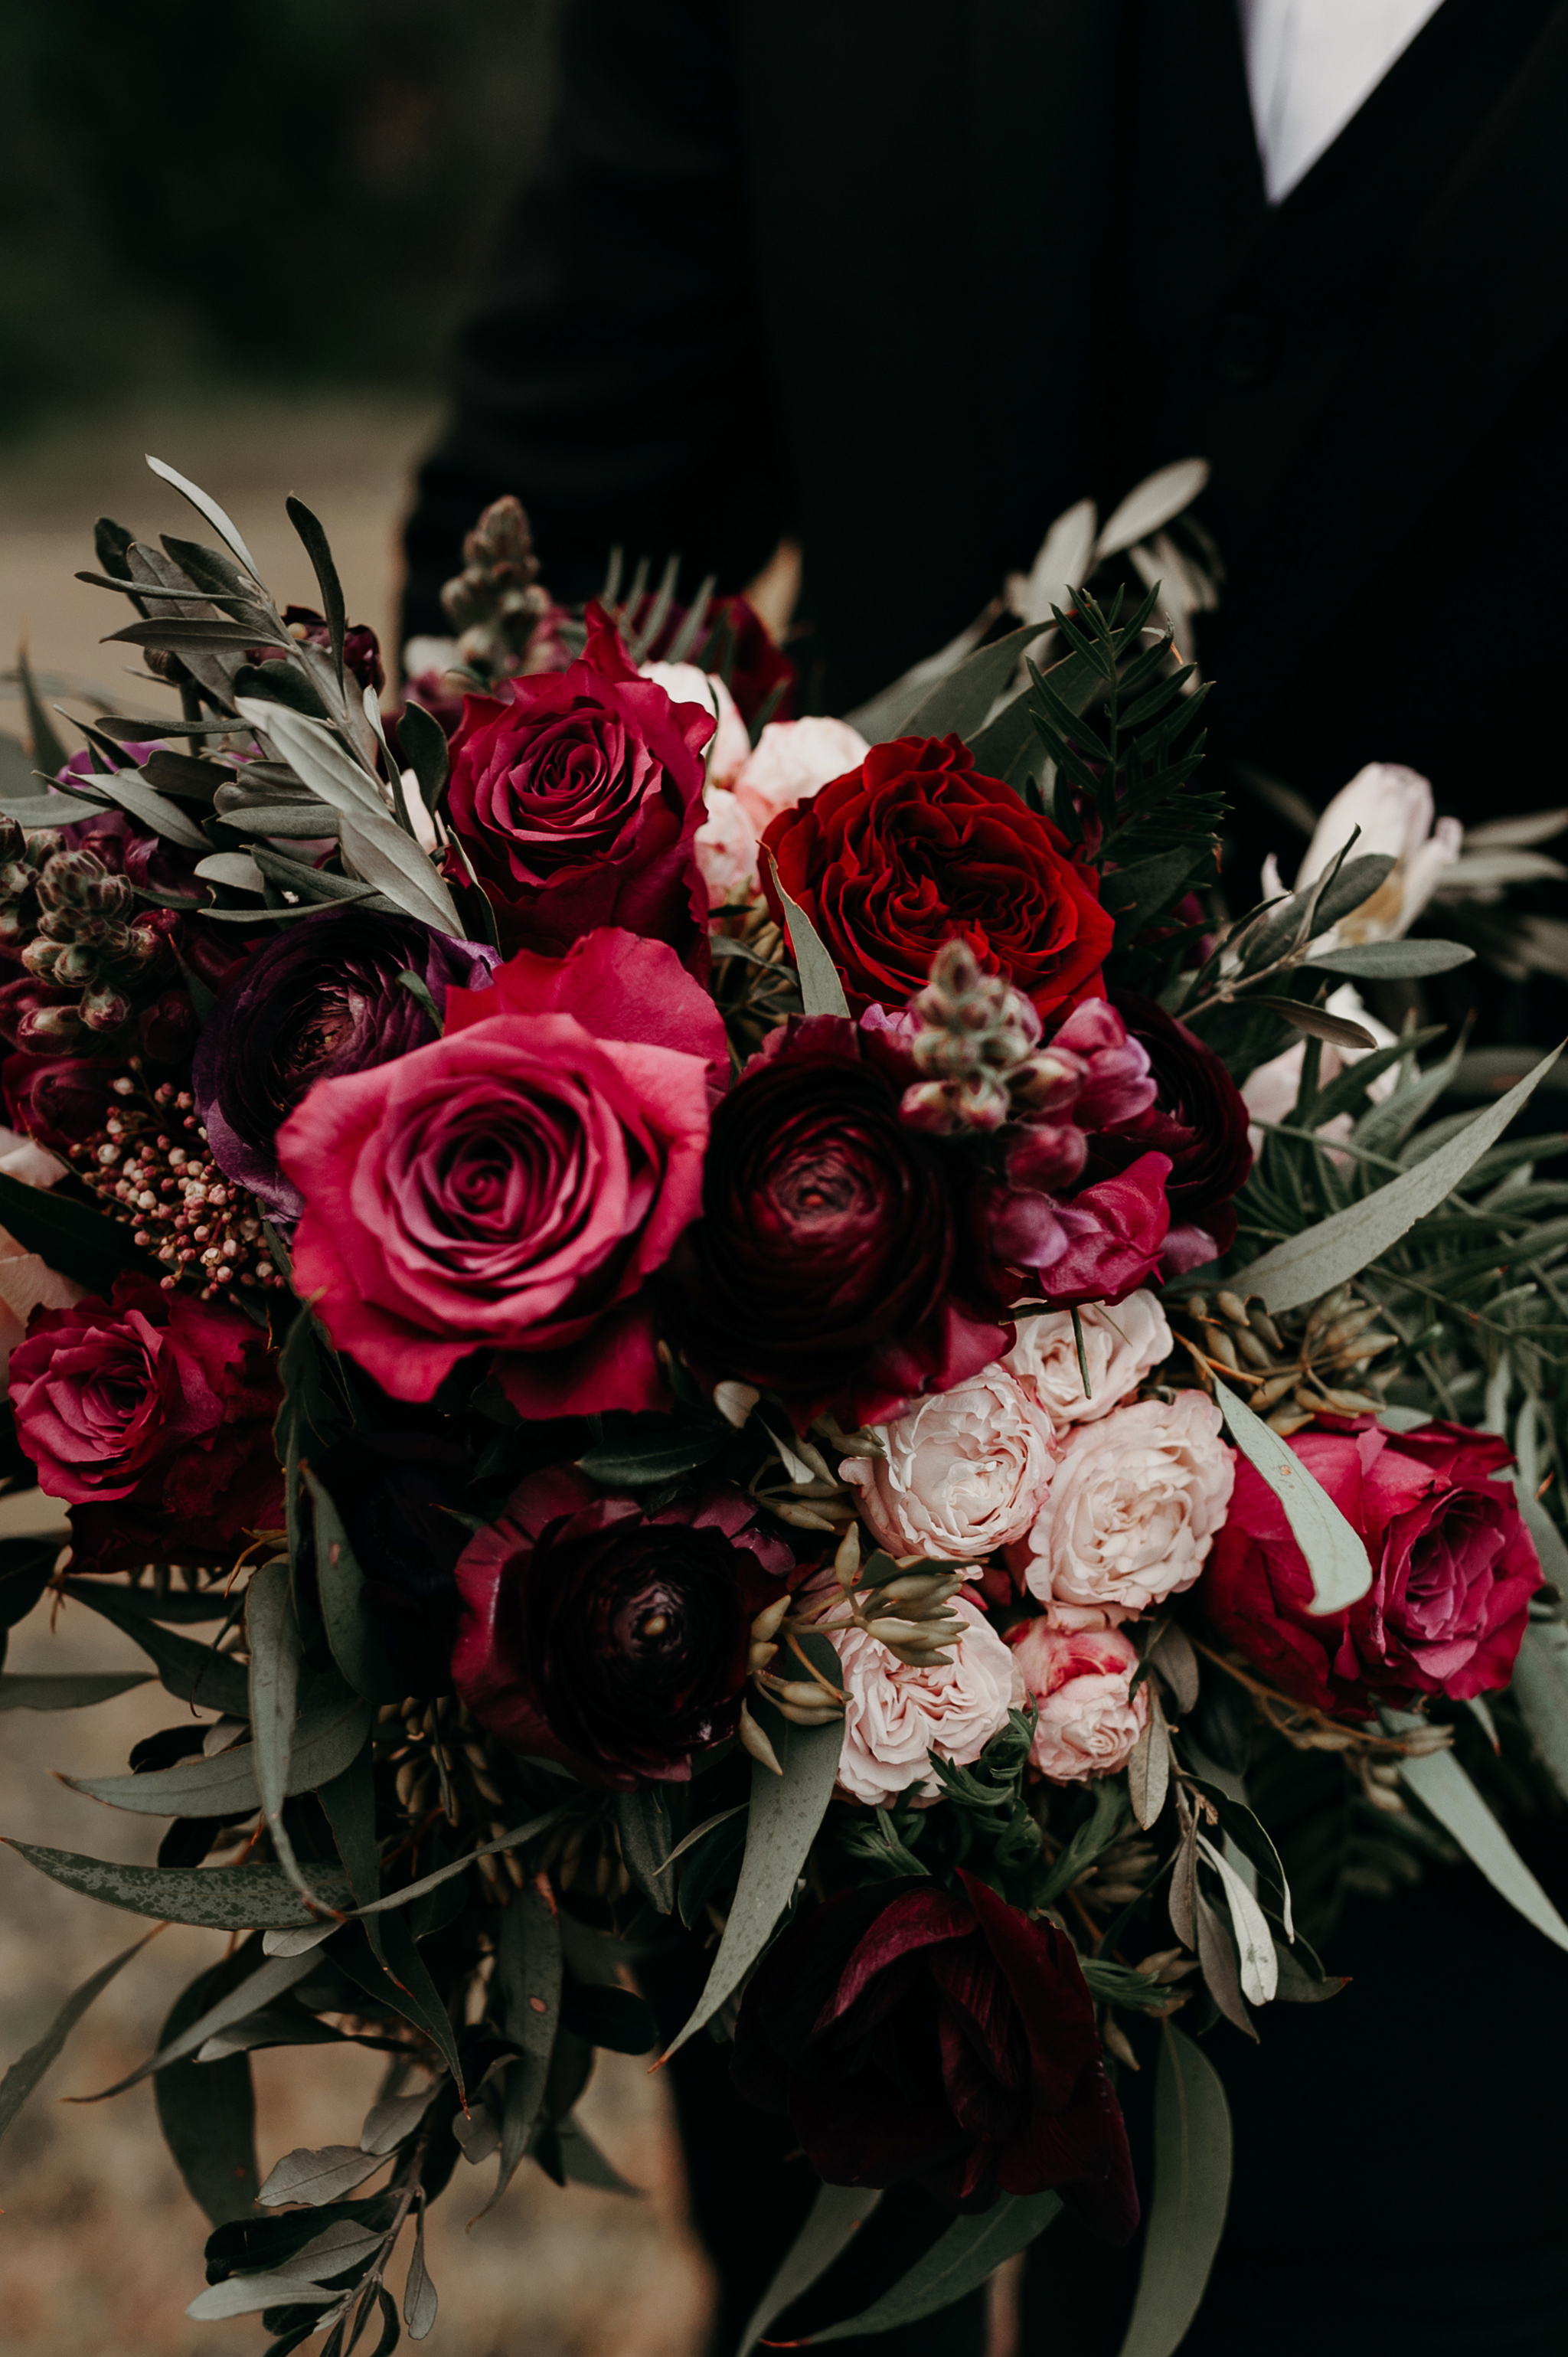 Rustic wedding bouquet in rich ruby tones